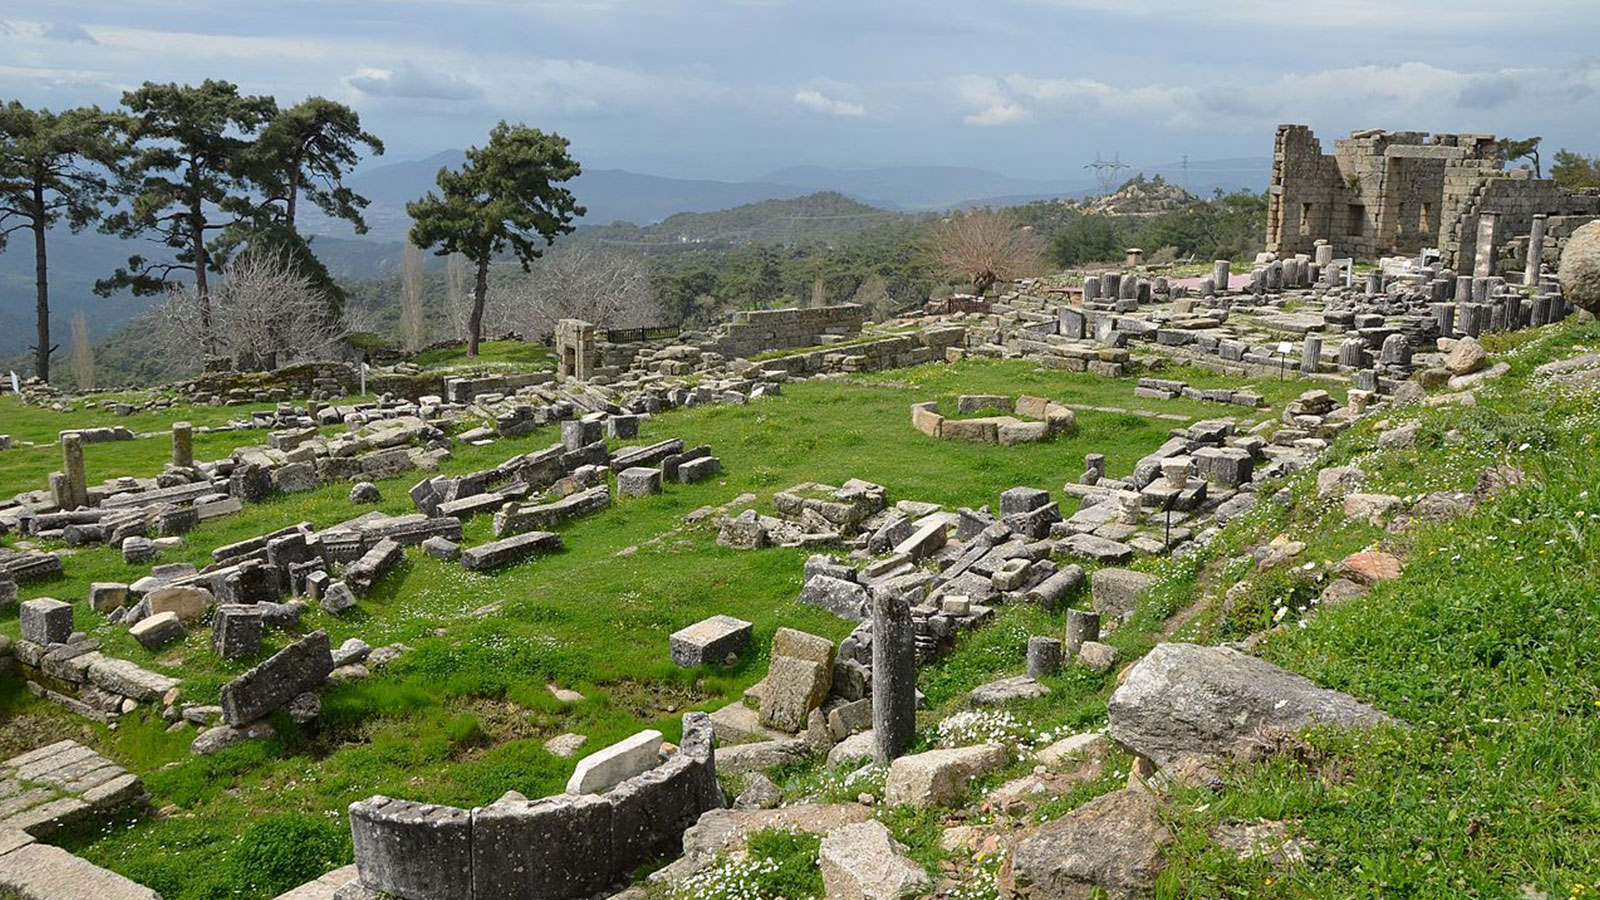 The Temple of Zeus Sanctuary Labraunda